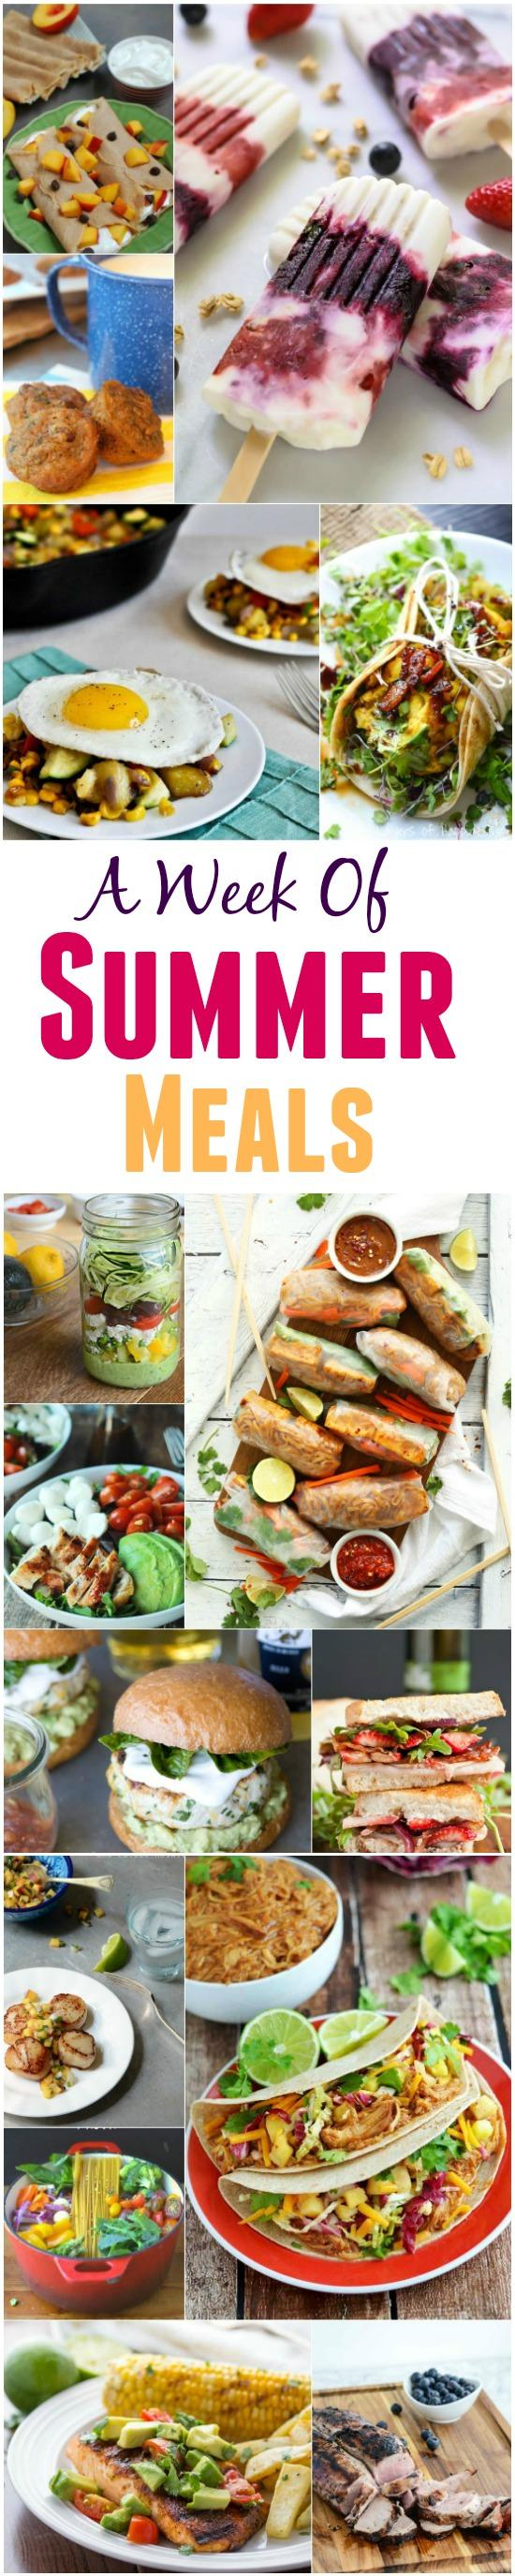 A Week of Summer Meal Ideas - breakfast, lunch, dinner, sides and salads!